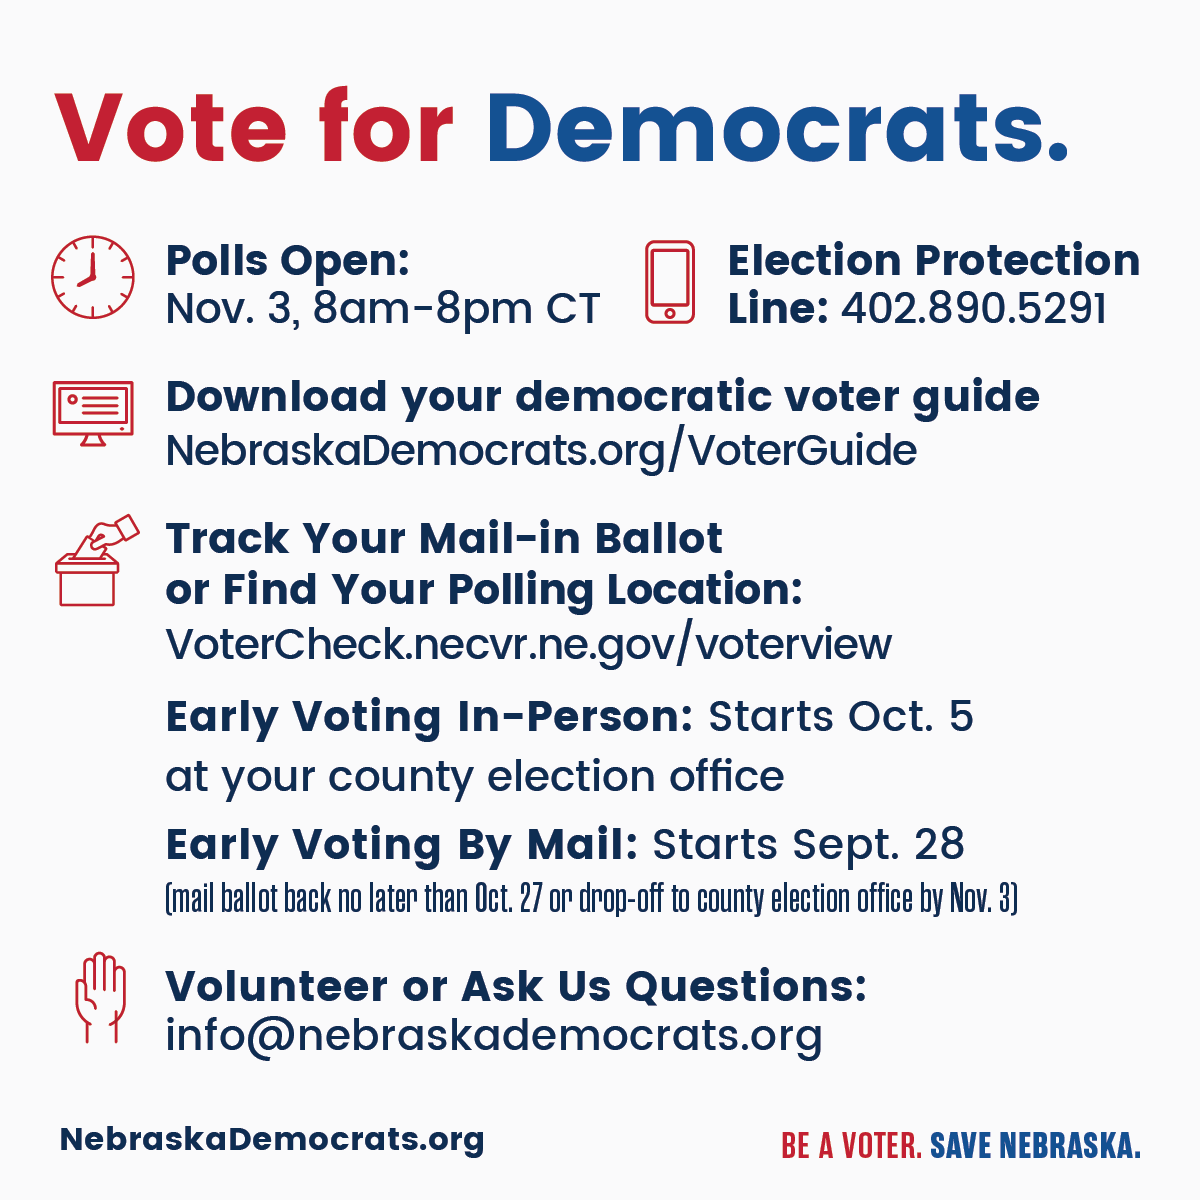 Vote for Democrats